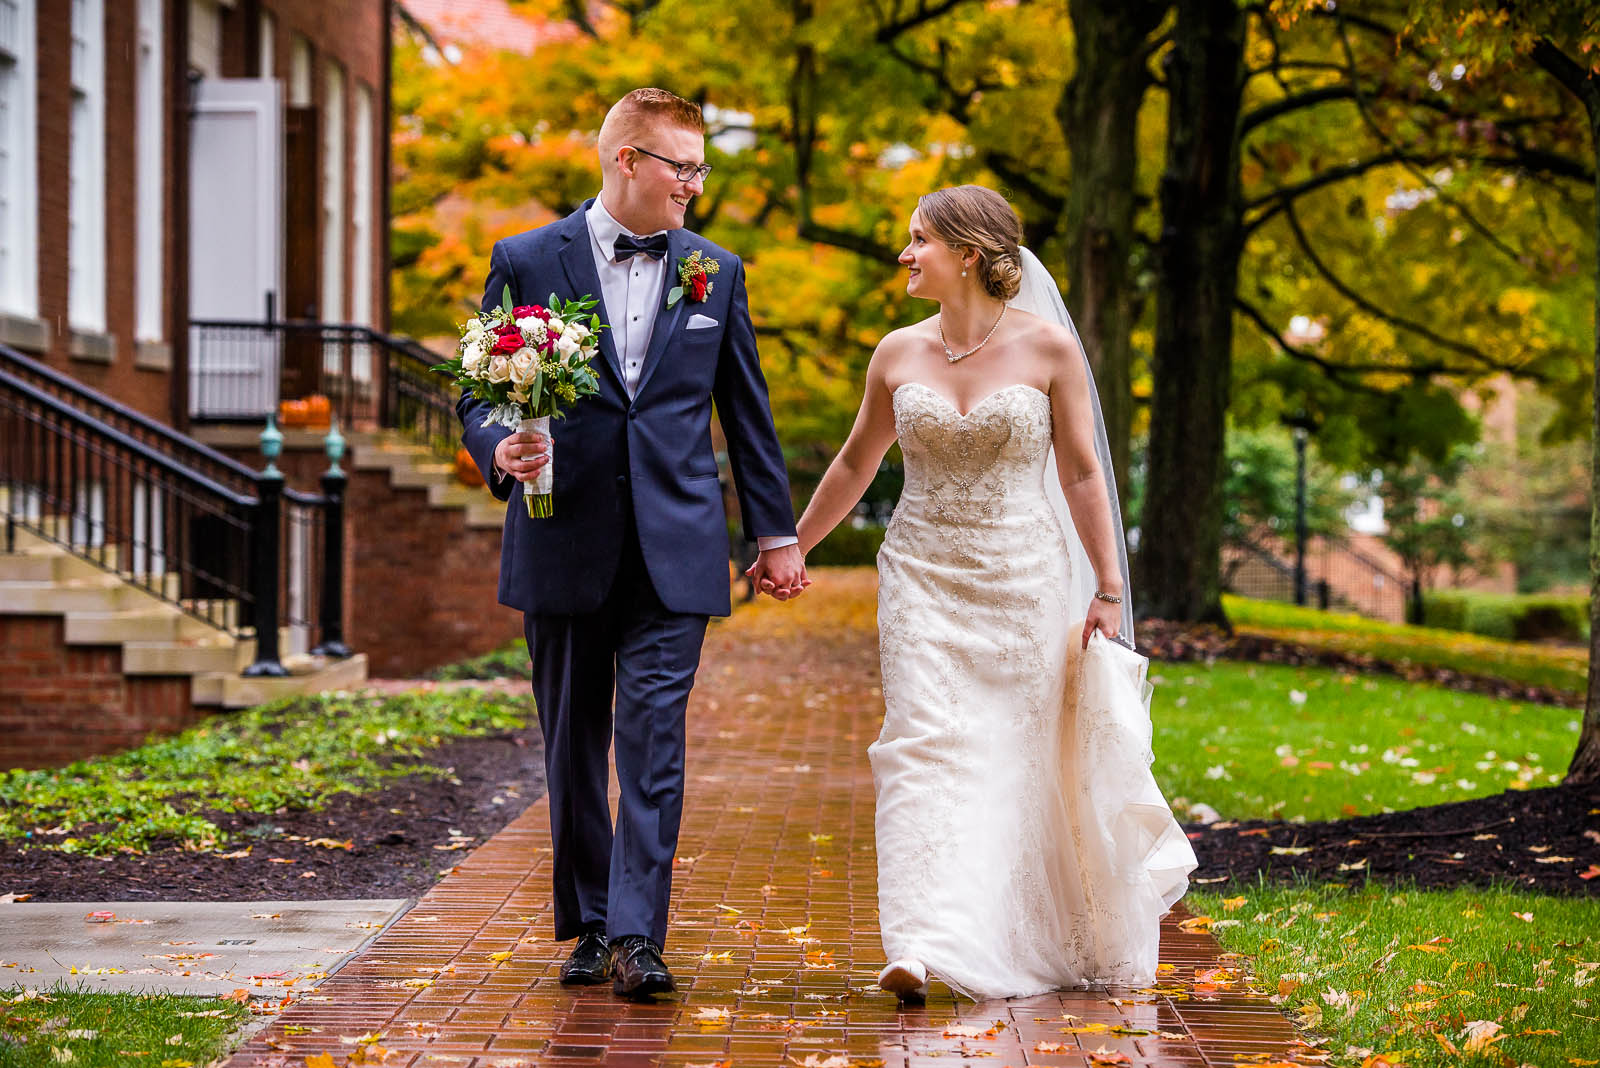 Eric_and_Christy_Photography_Blog_Wedding_Erica_Mike-56